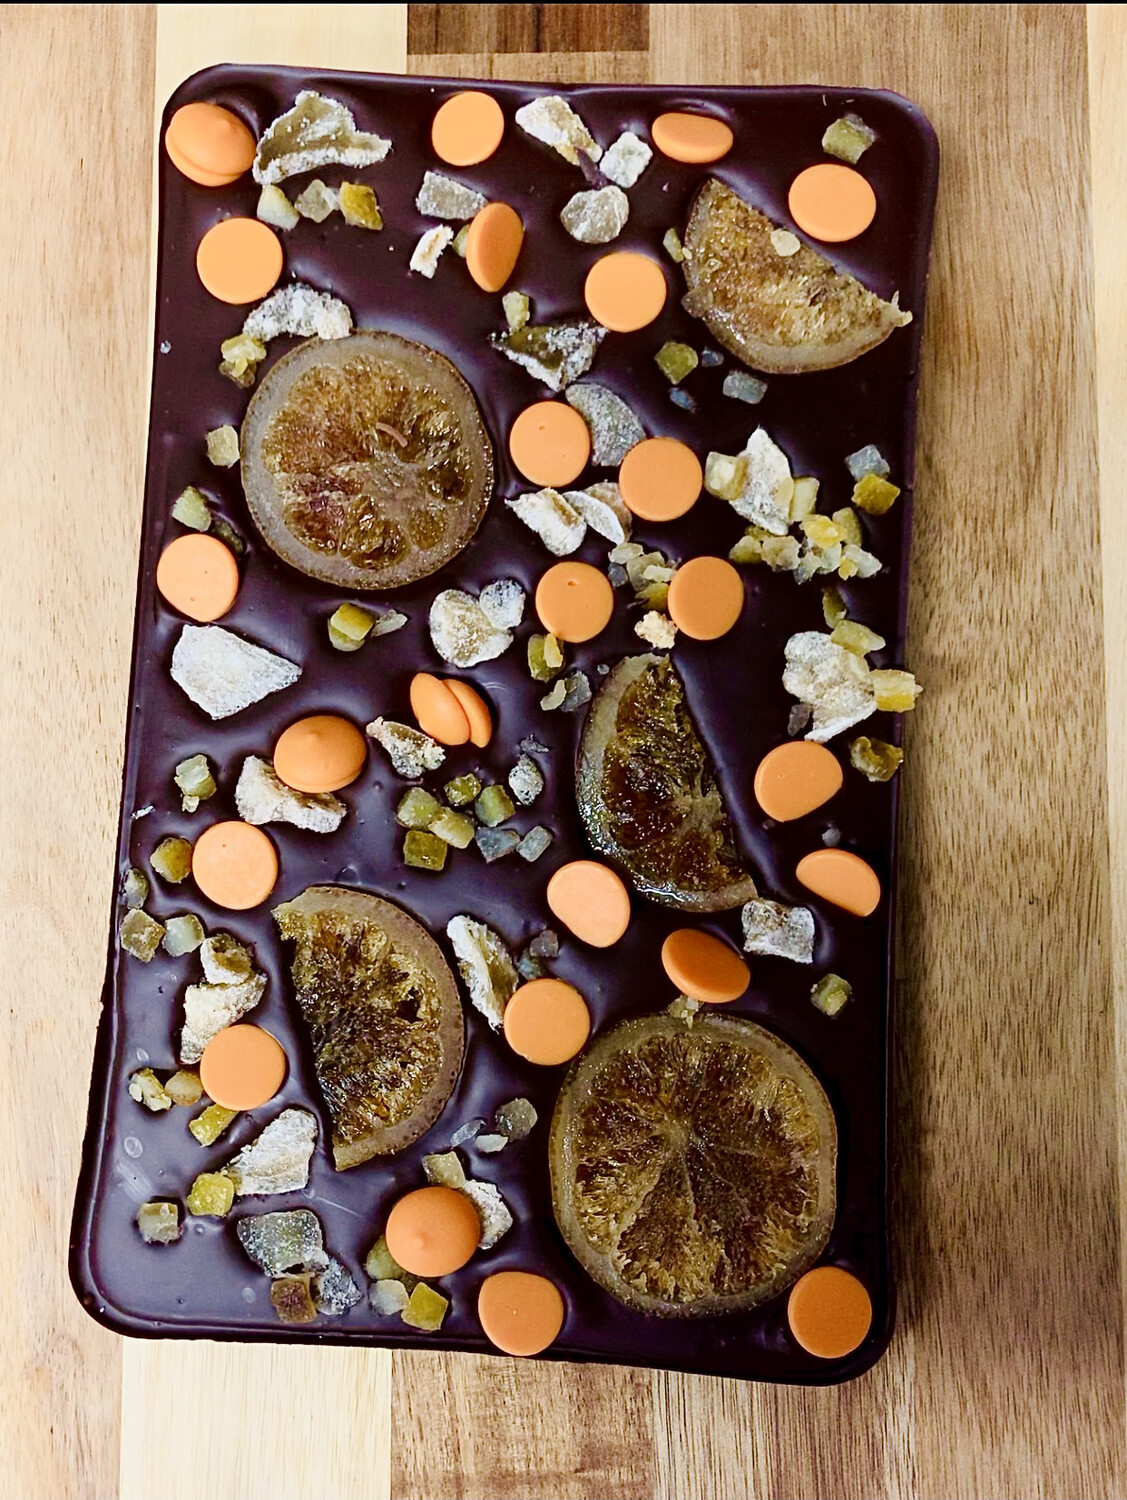 When life give you citrus... : Dark chocolate, candied orange and ginger.